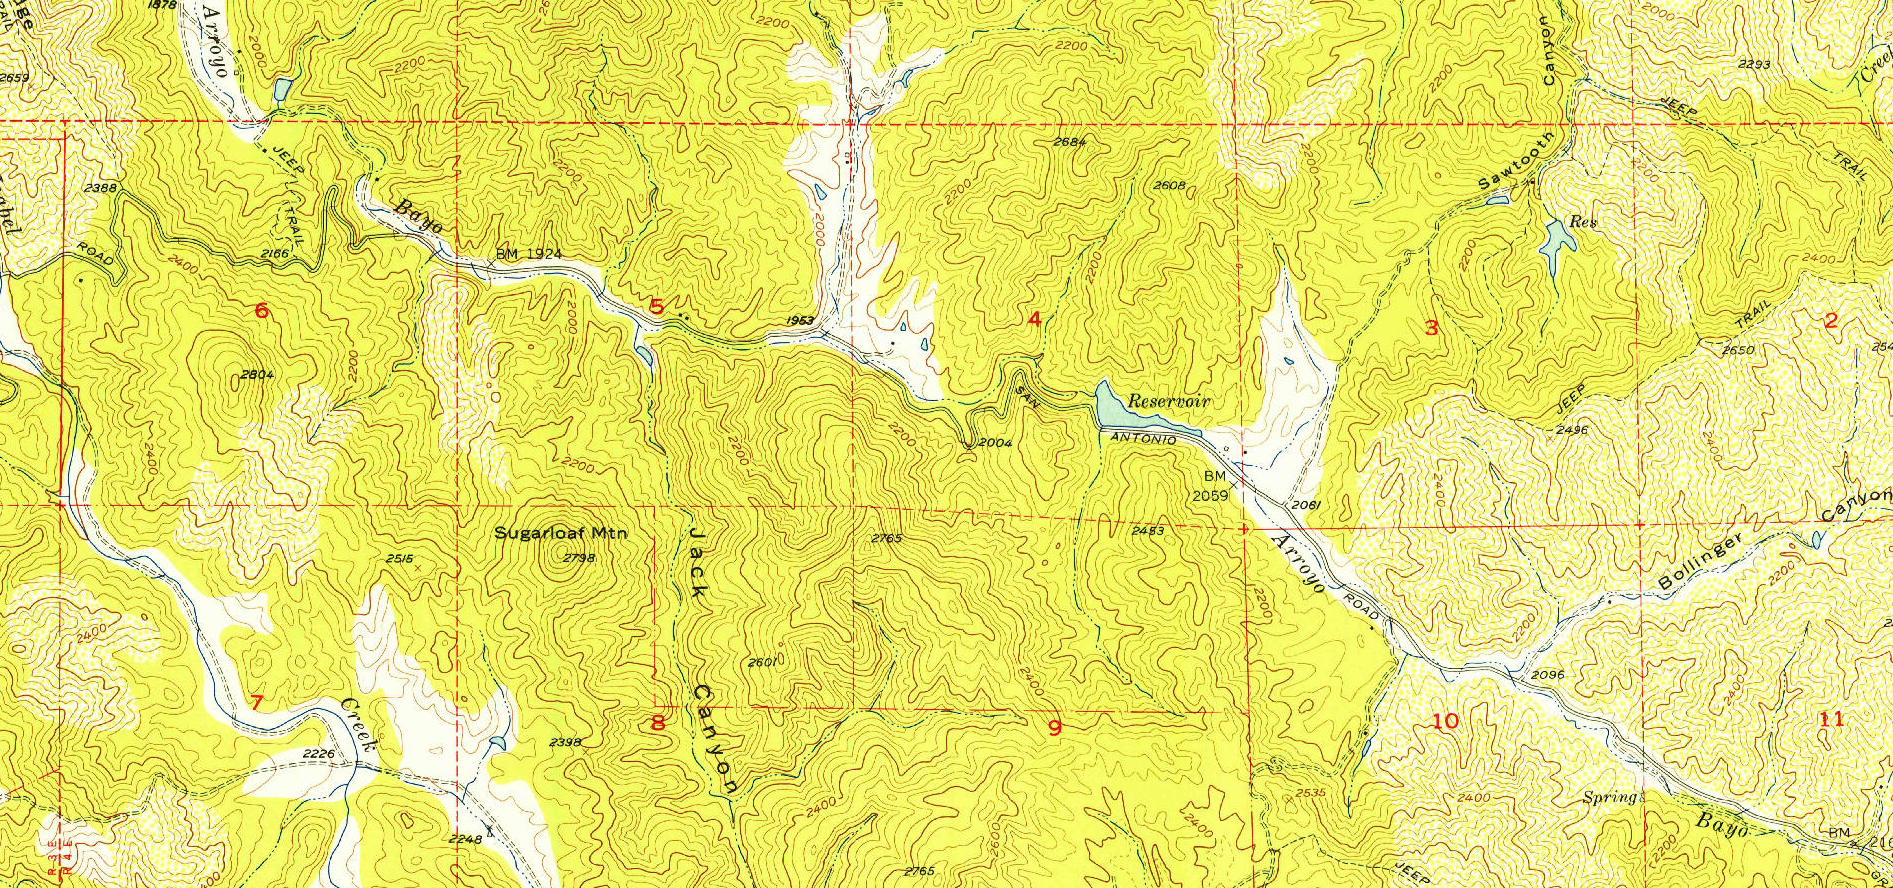 USGS topo map from 1955.